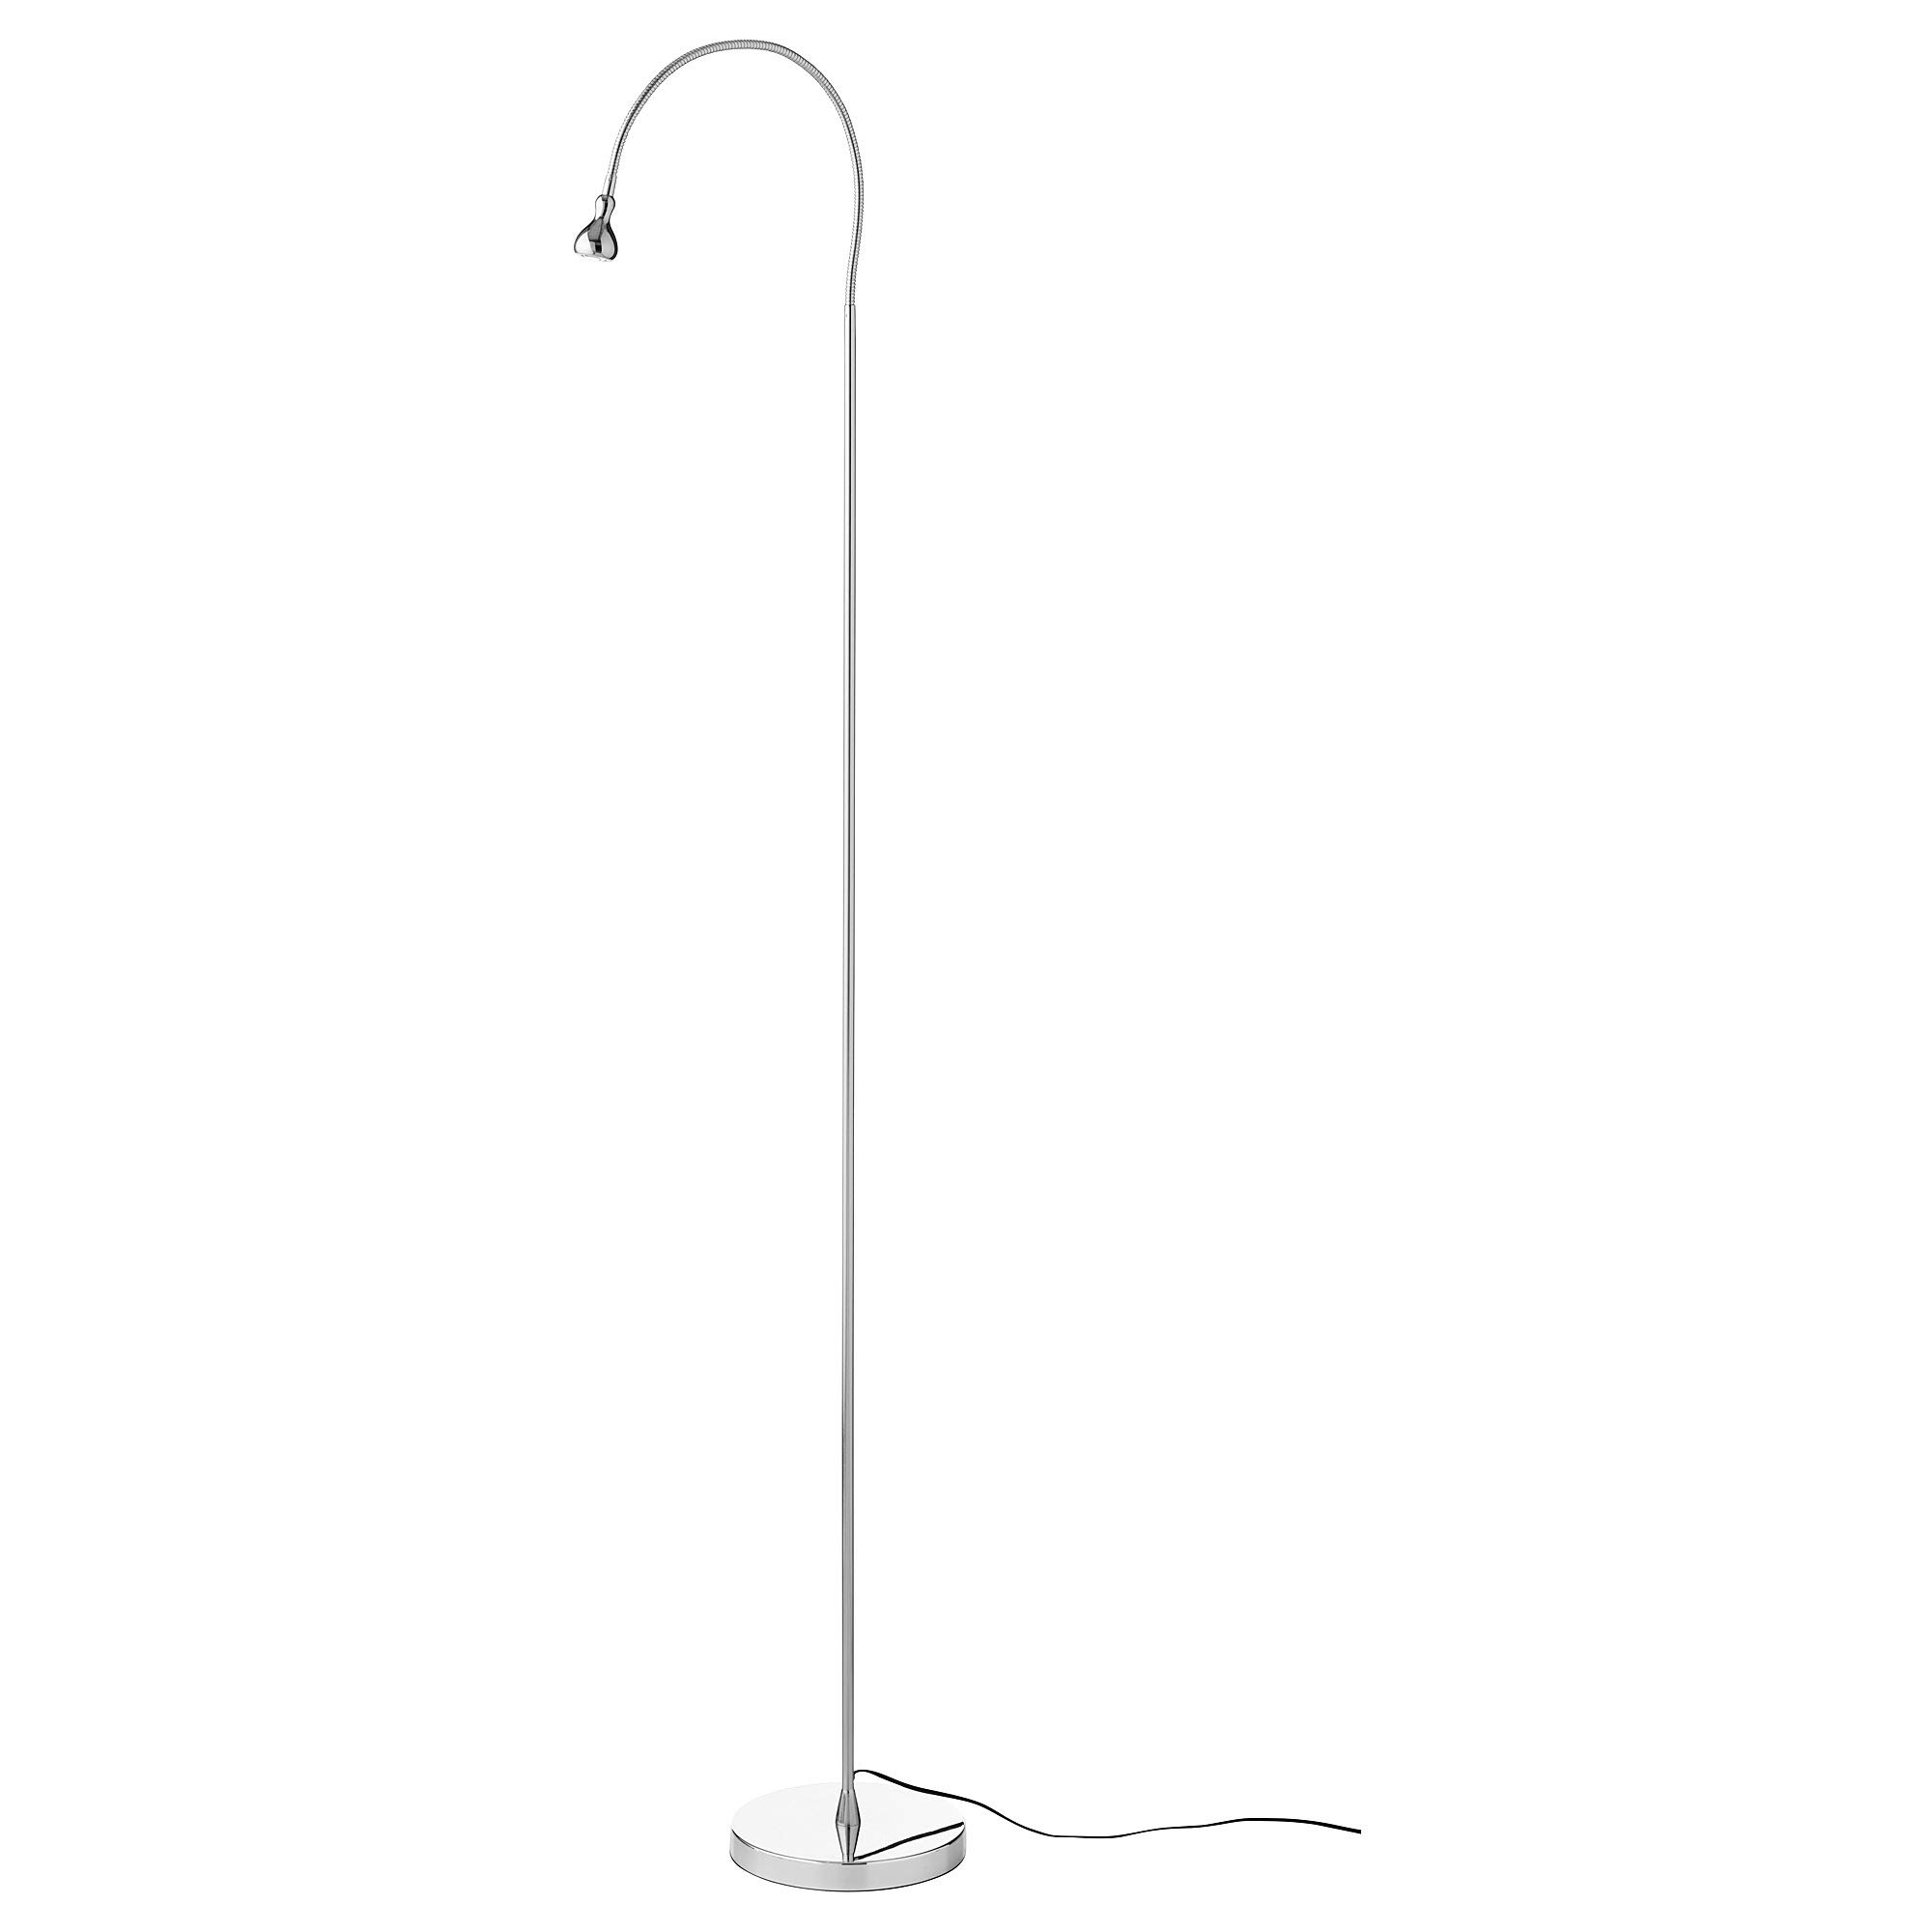 IKEA 803.735.43 Jansjö Led Floor/Read Lamp, Silver Color